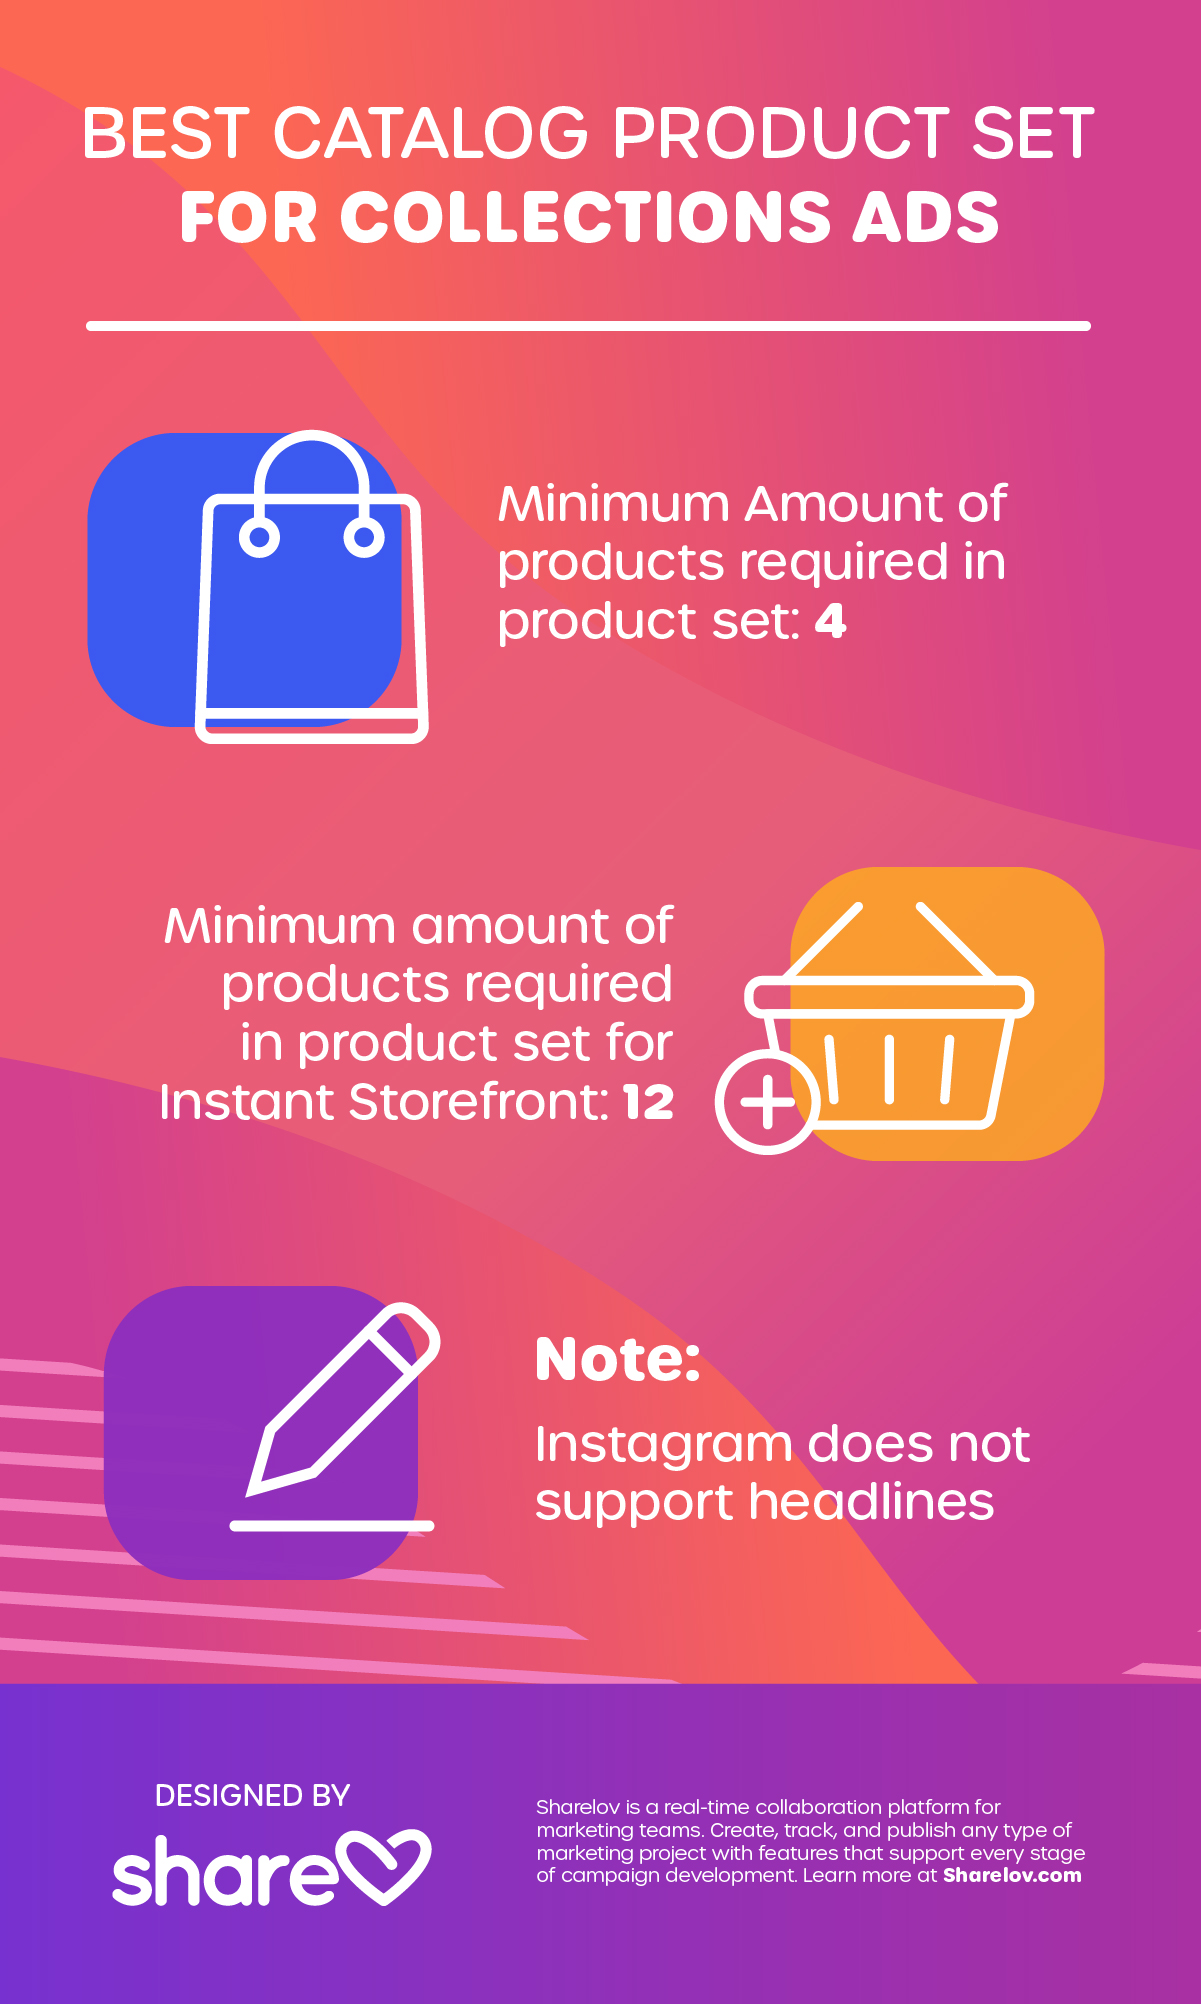 Best Catalog Product Set Specs for Collections Ads infographic